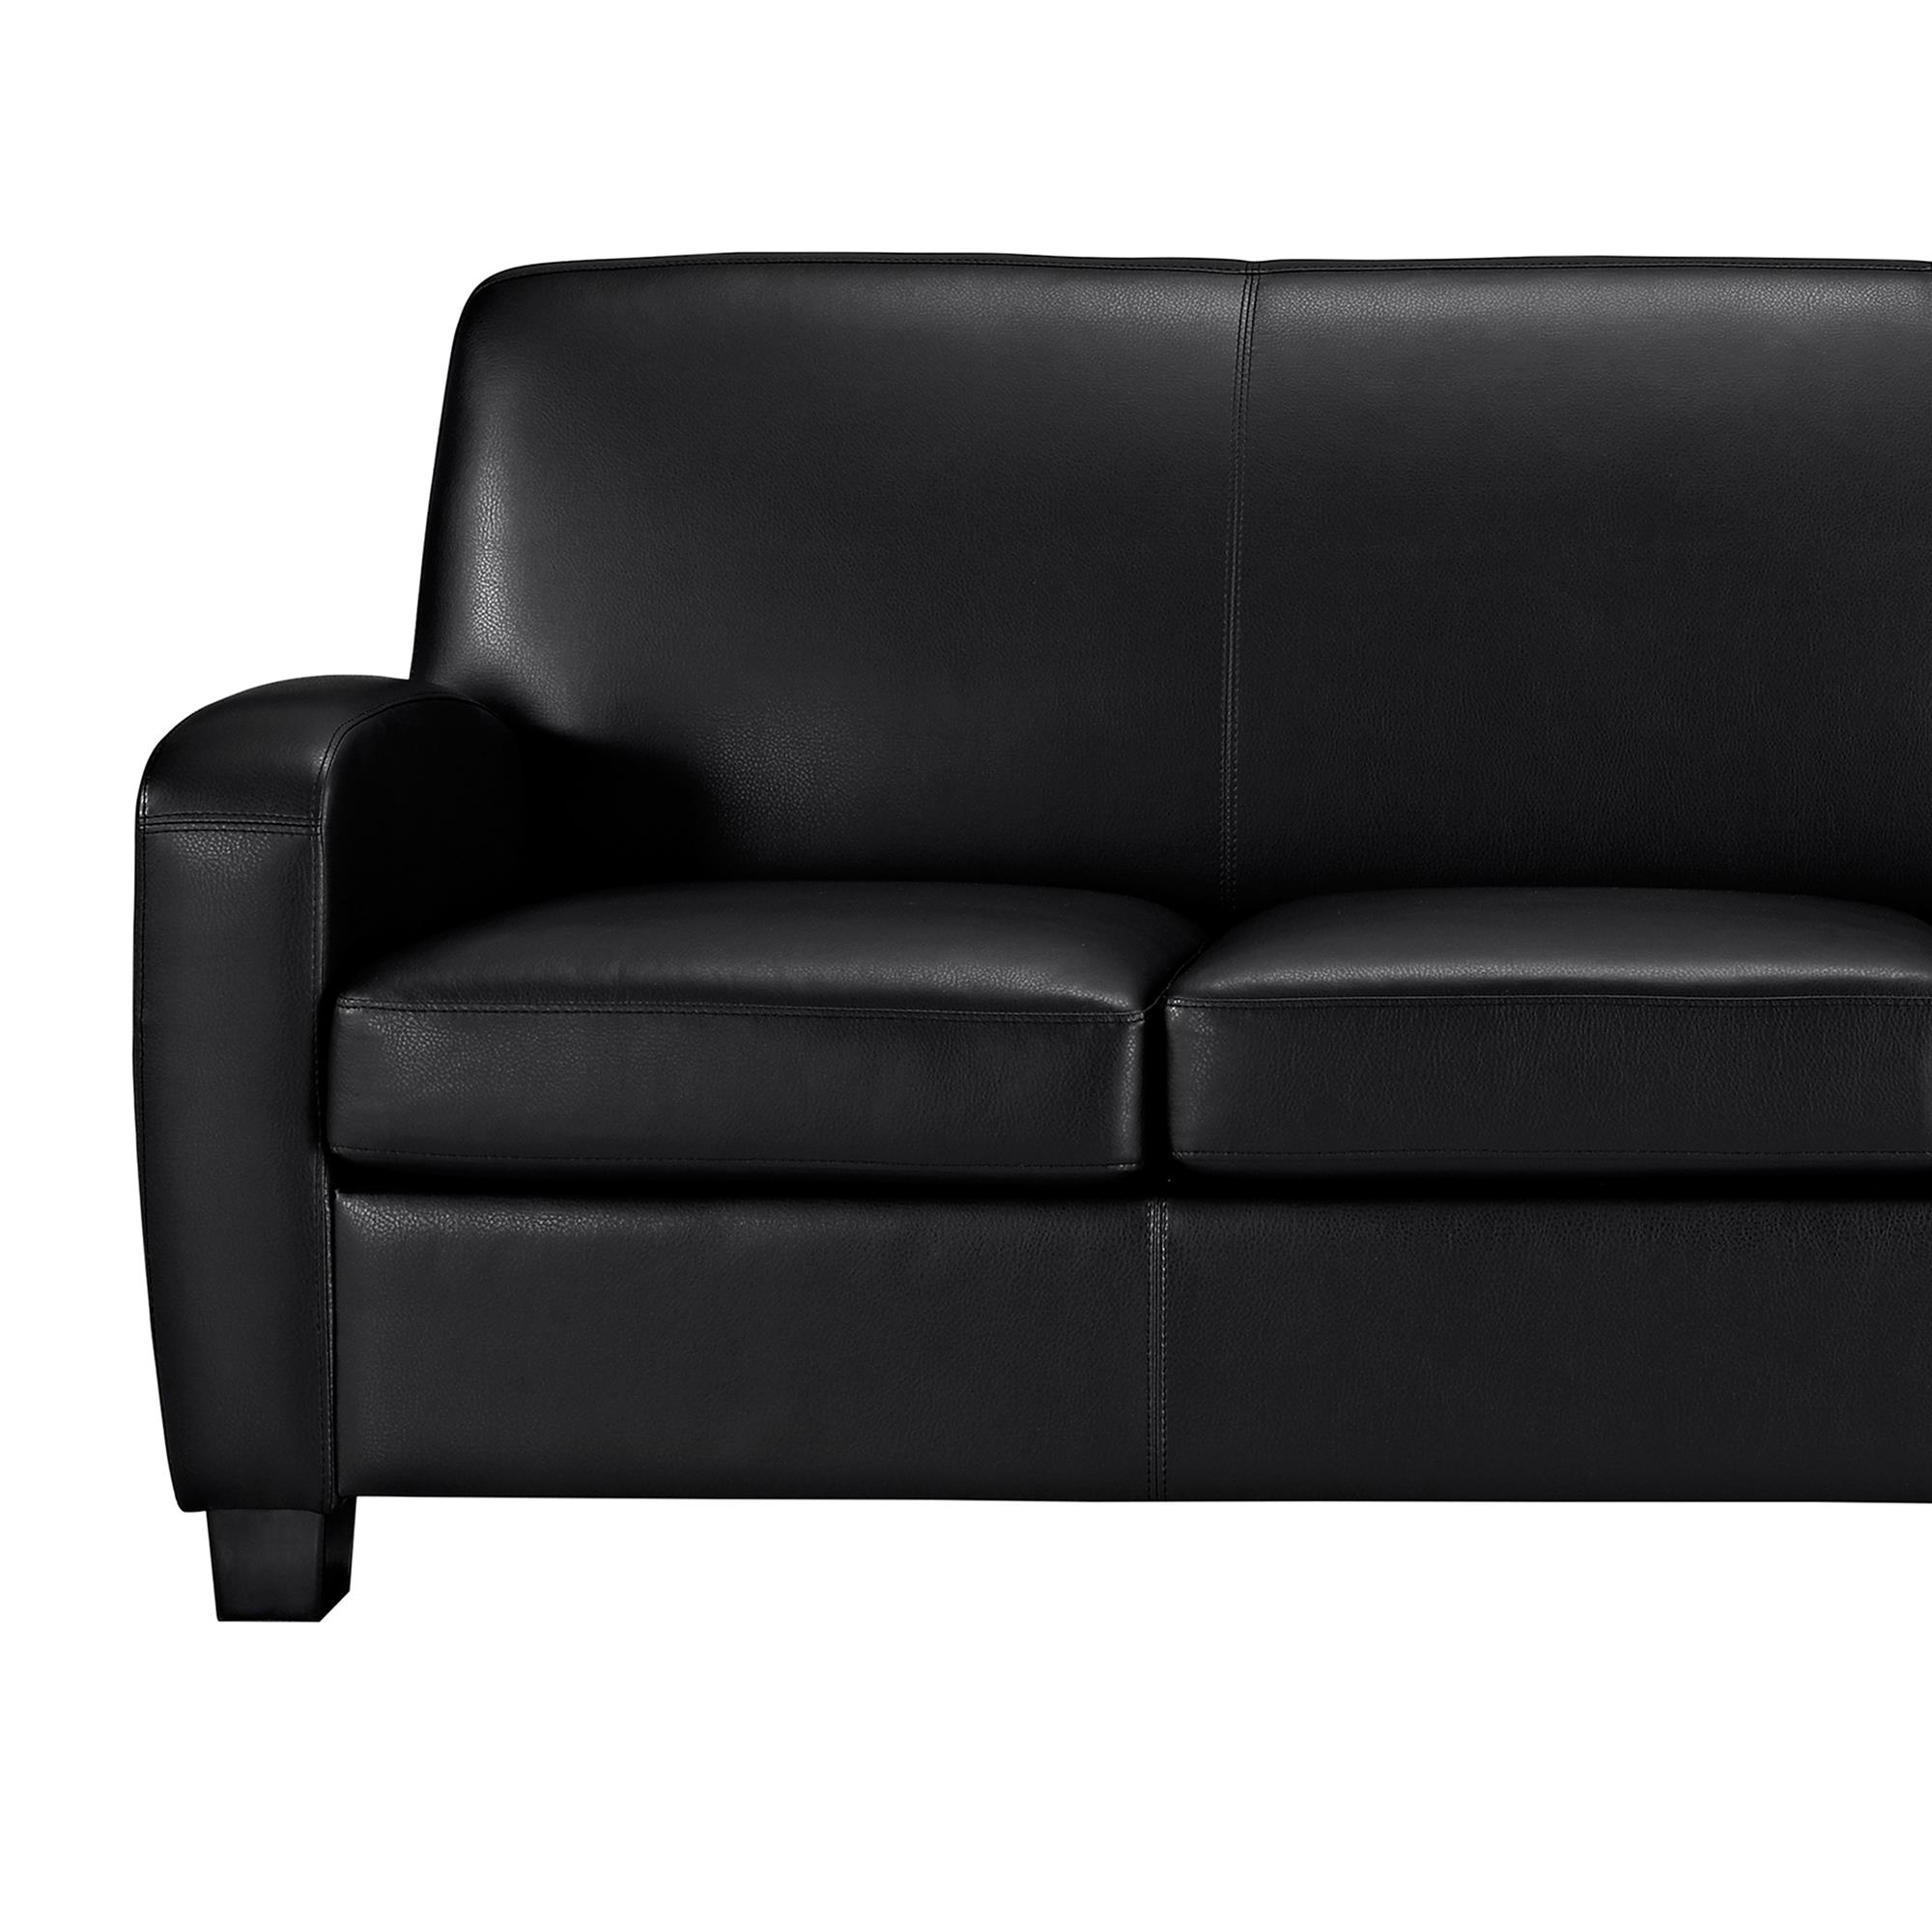 Mainstays Faux Leather Sofa, Black - Walmart.com